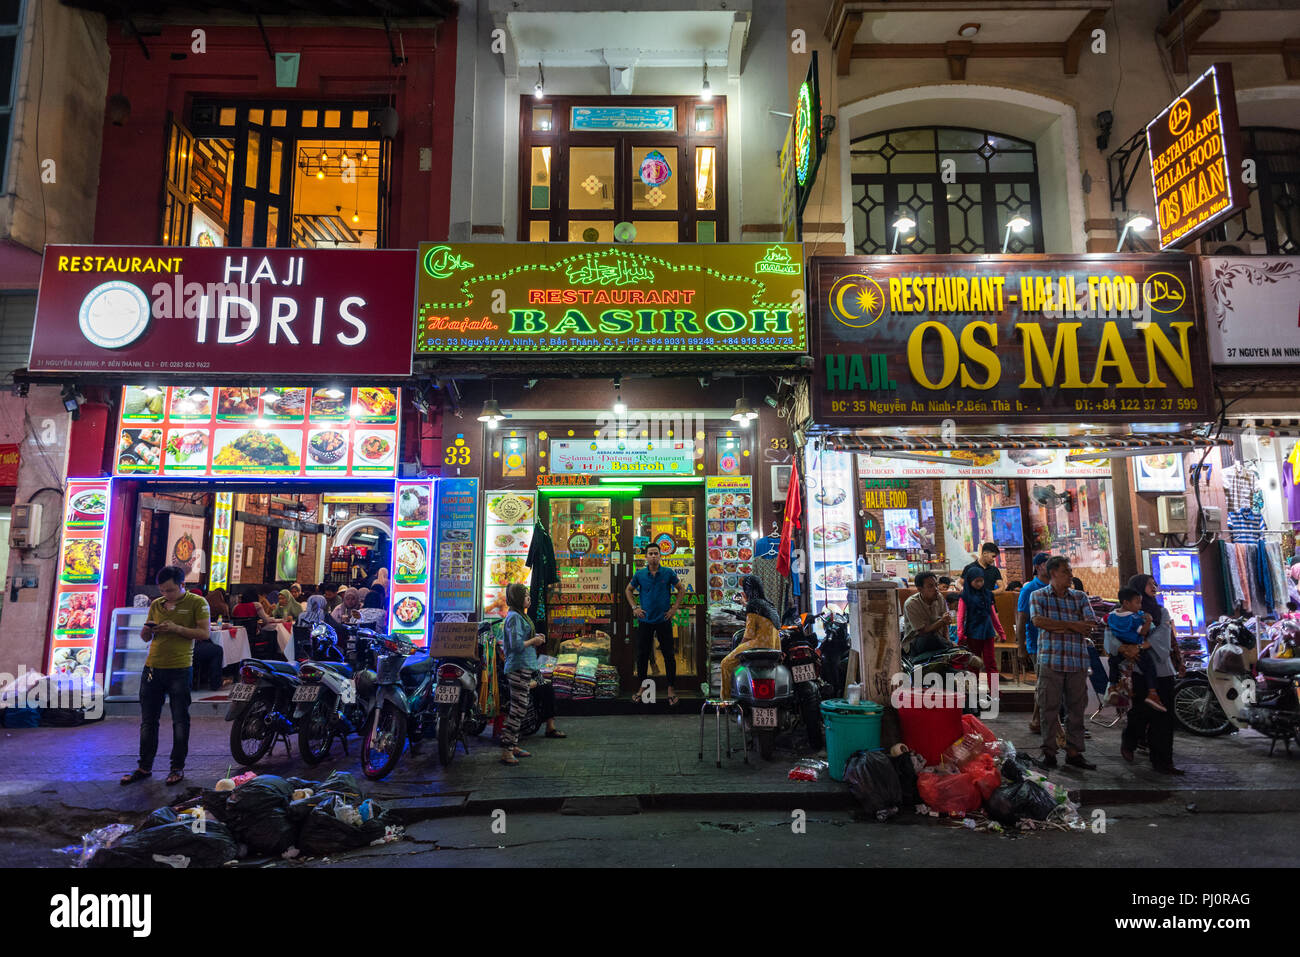 Ho Chi Minh City Vietnam April 28 2018 Garbage In Front Of Halal Food Restaurants Next To Ben Thanh Market Stock Photo Alamy